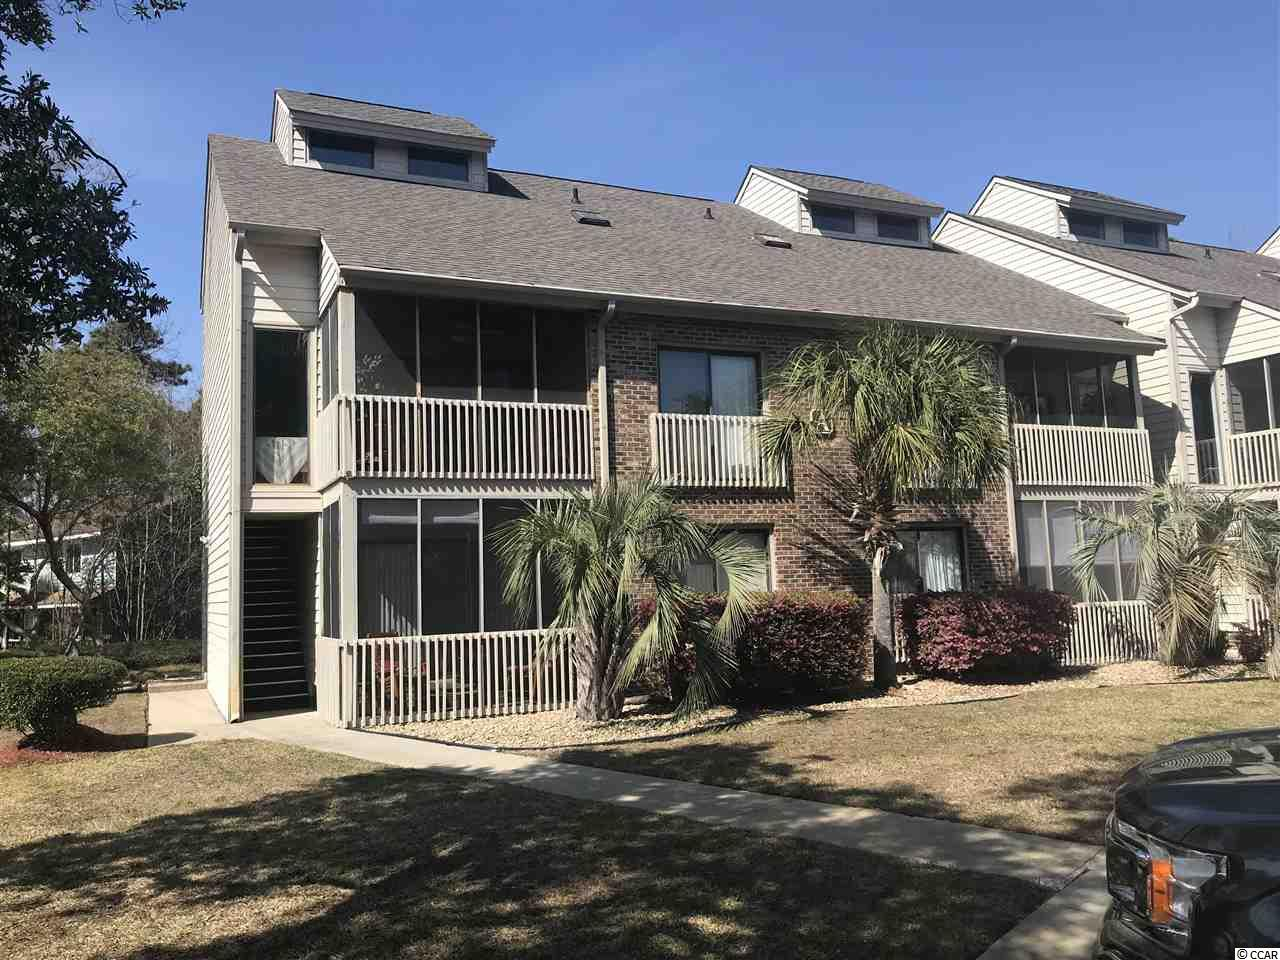 Well maintained beach condo in a great location in family-friendly Surfside Beach. Start your day on your private, screened porch with a view of beautiful live oaks or take a mile walk or drive your golf cart to the beach and enjoy a beautiful sunrise. During the day, relax by the outdoor pool and at the end of the day you can get glimpses of the setting sun from the small back patio. Shopping & dining only minutes away. This ground floor condo features a private side entrance unlike most of the units. Two bedrooms & 2 full baths with walk-in showers. Pergo flooring in the living/dining area & master bedroom. Laminate flooring in the 2nd bedroom plus tile flooring in the kitchen area & bathrooms. Kitchen features Corian countertop. Ceiling fans in Living Room & both Bedrooms. New roof installed in 2017 and a new HVAC system installed in July 2018. Square footage is approximate and not guaranteed. Buyer is responsible for verification. Owner allowed 1 pet up to 30 lbs.